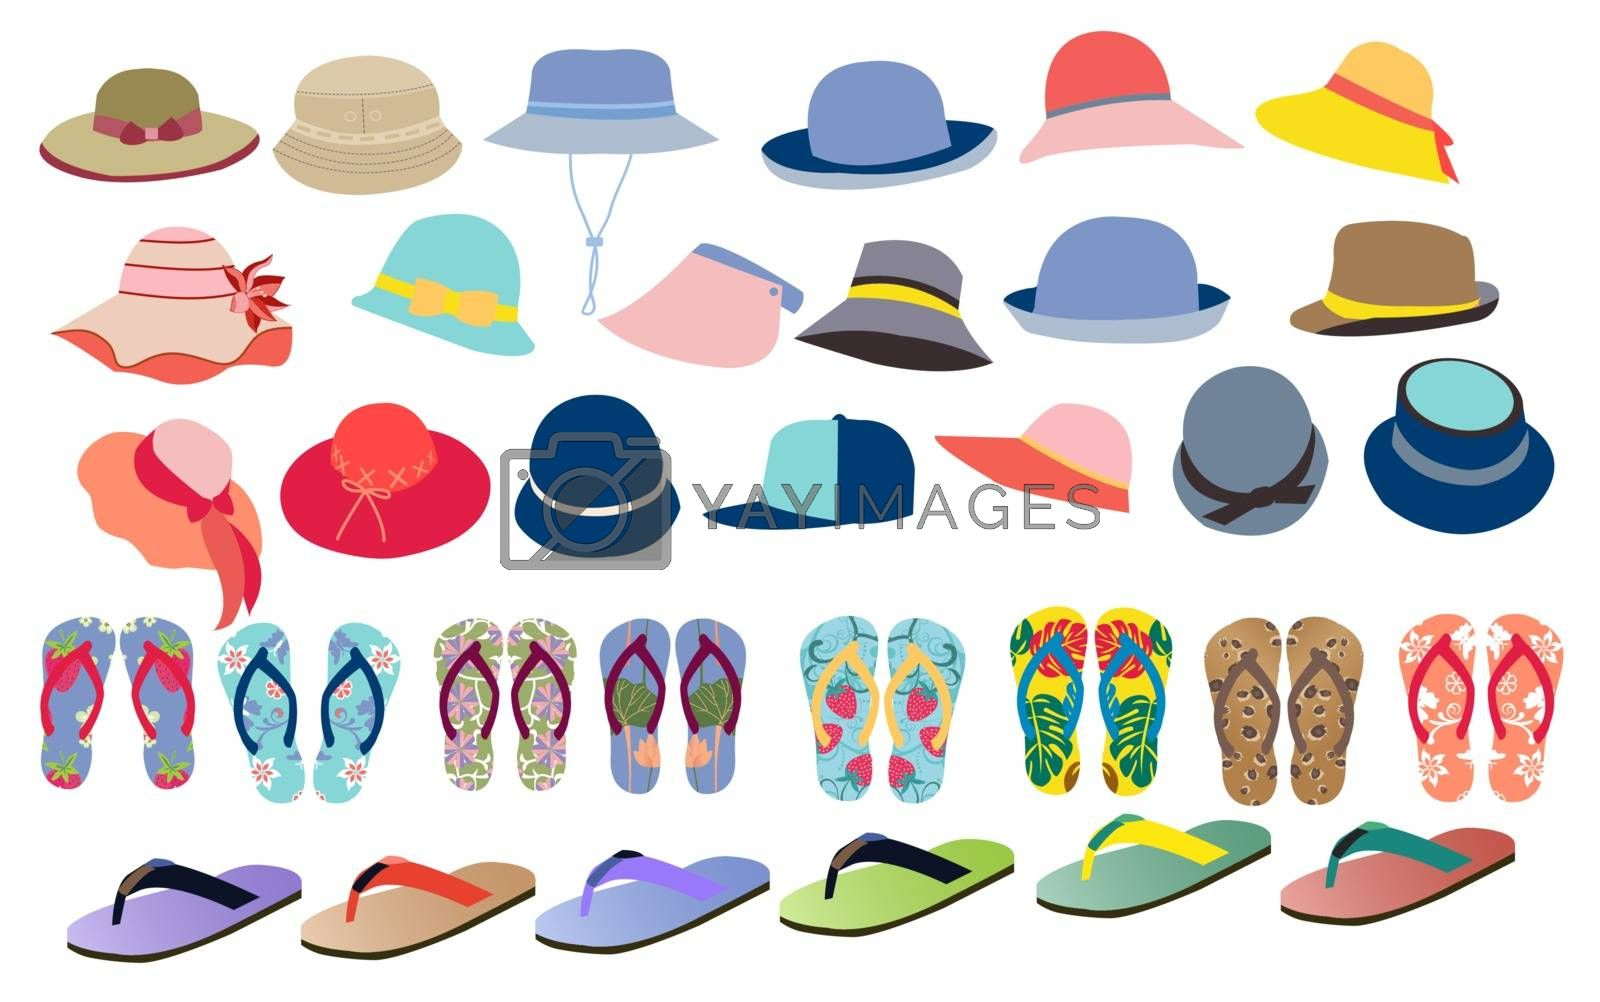 Vector set with cute and colorful summer accessories hats, flip flops for beach holiday design. Collection of accessories for men and women clothes icons